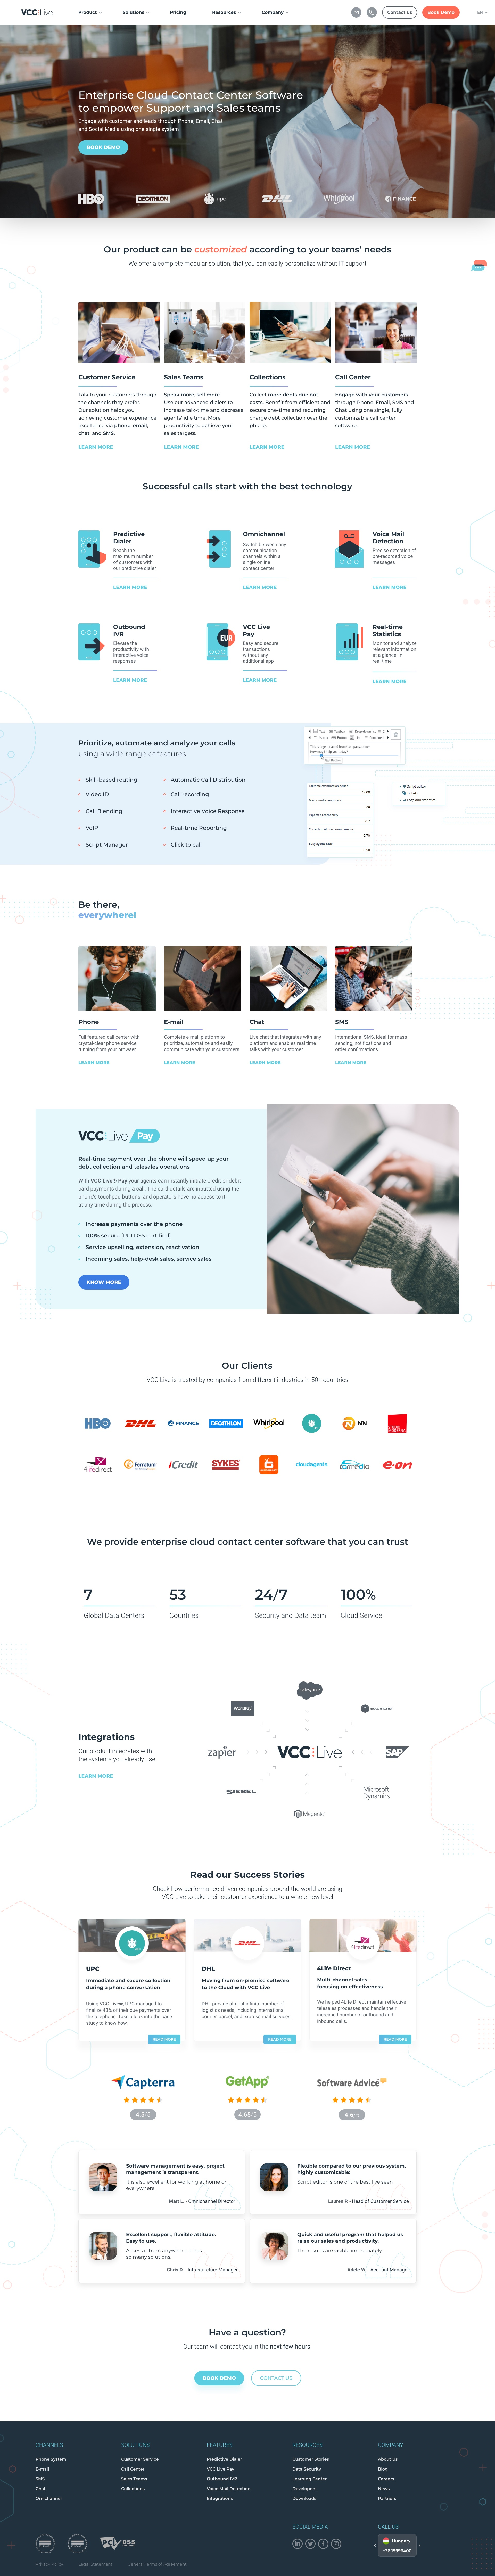 VCC Live Home Page